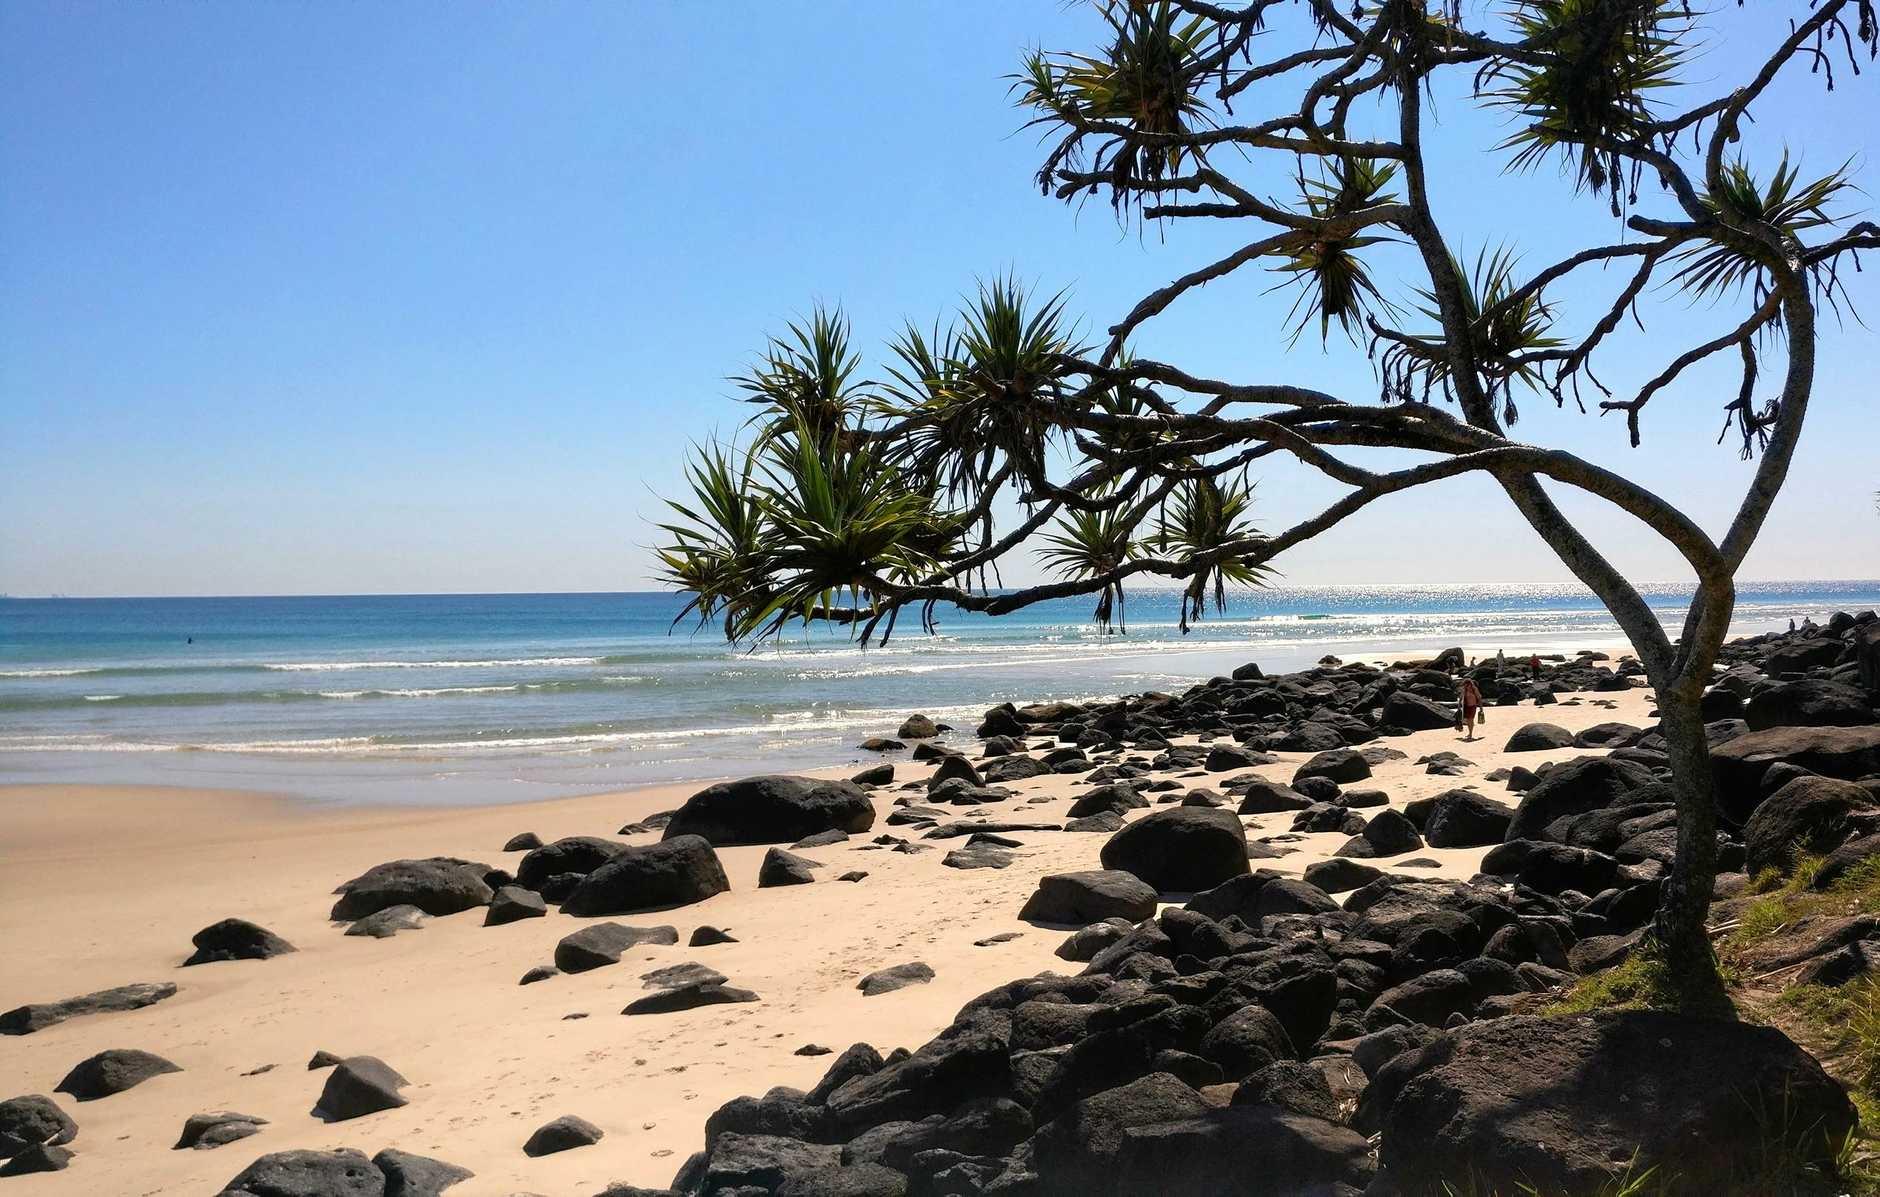 Another spectacular day at Coolangatta Beach.